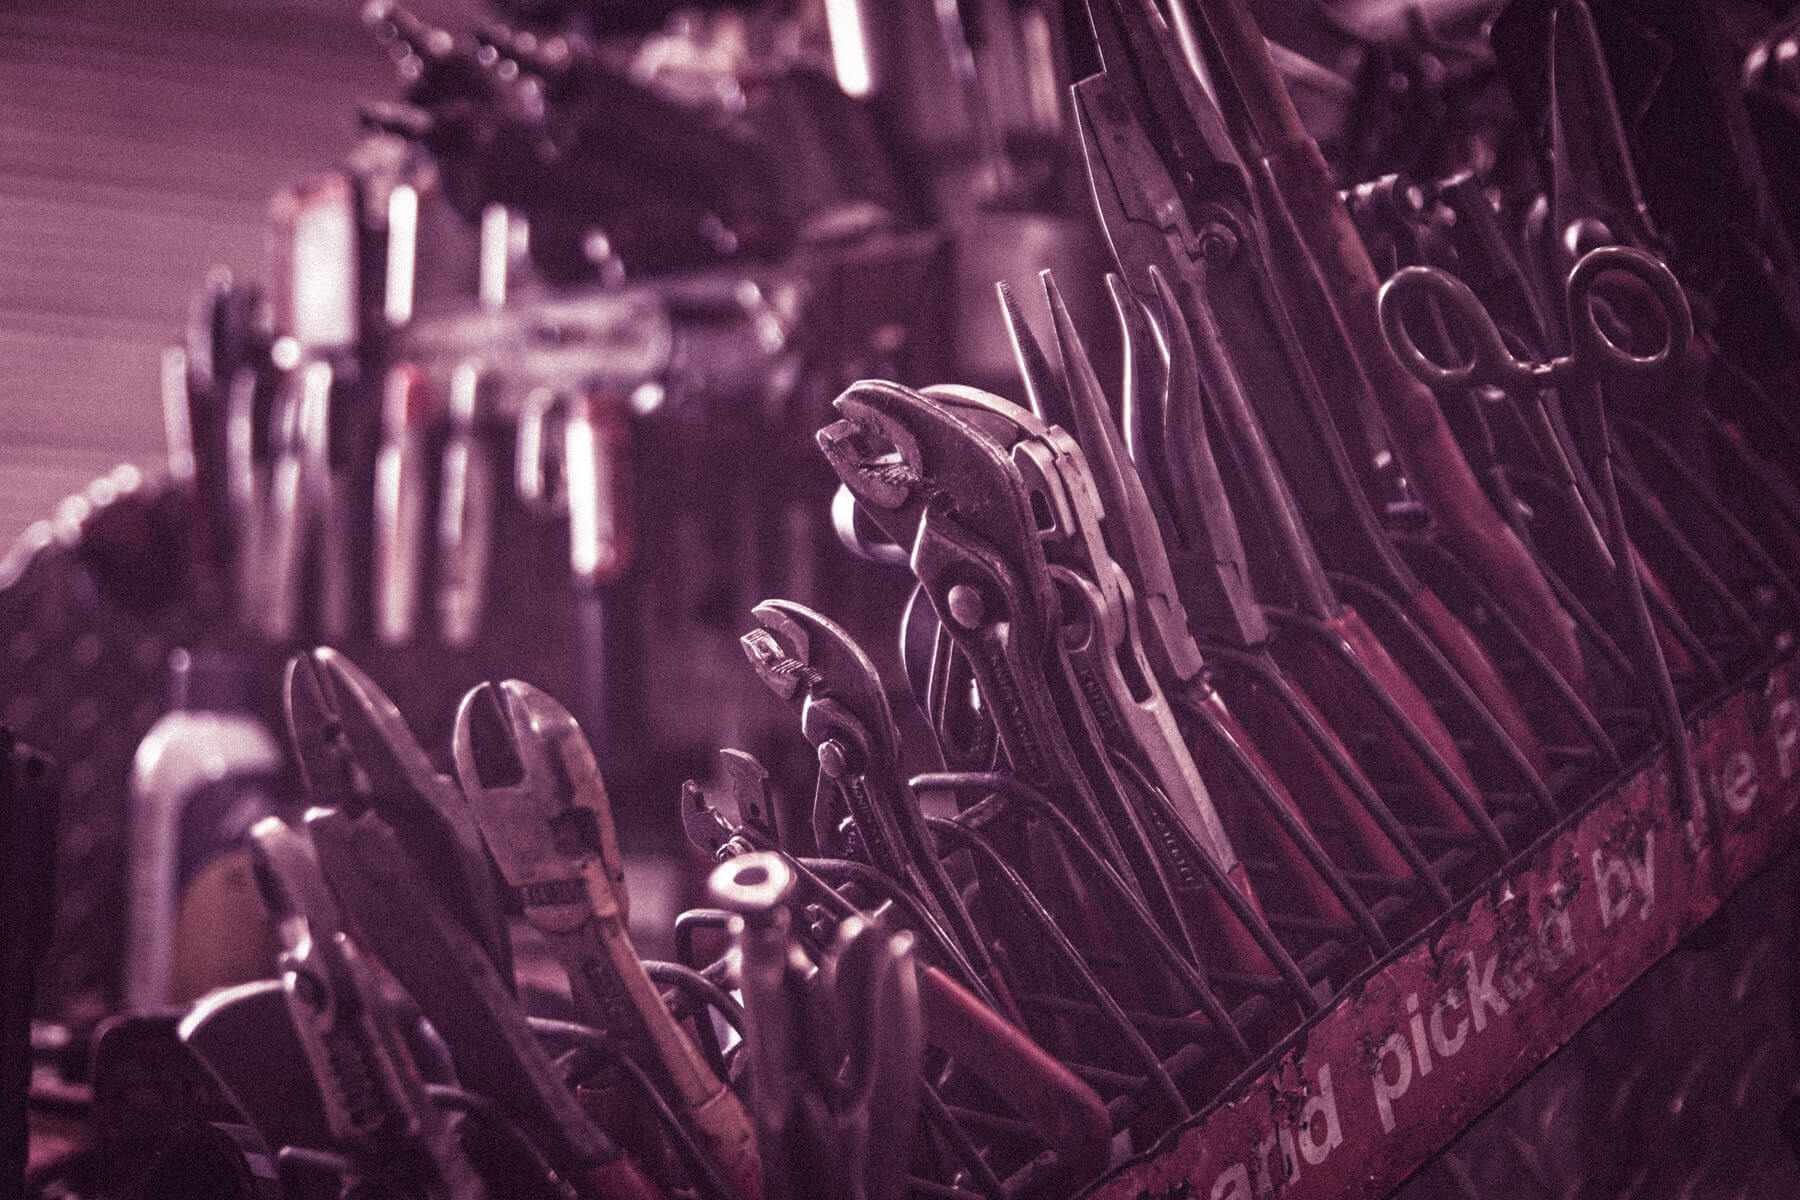 A rack of tools.